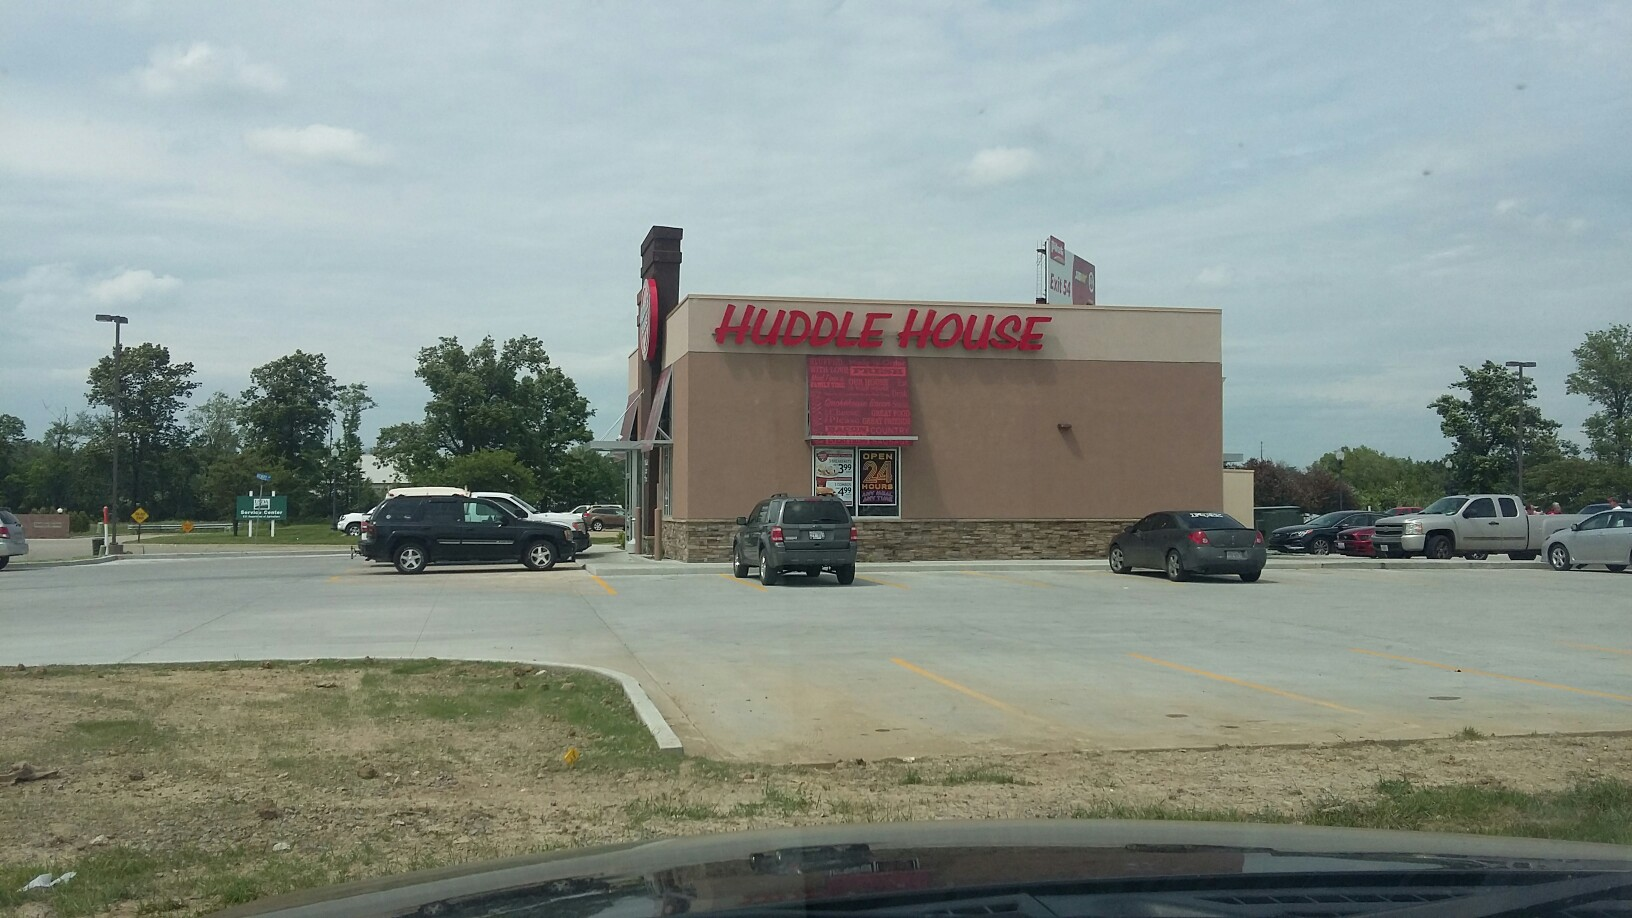 Huddle House, Marion IL